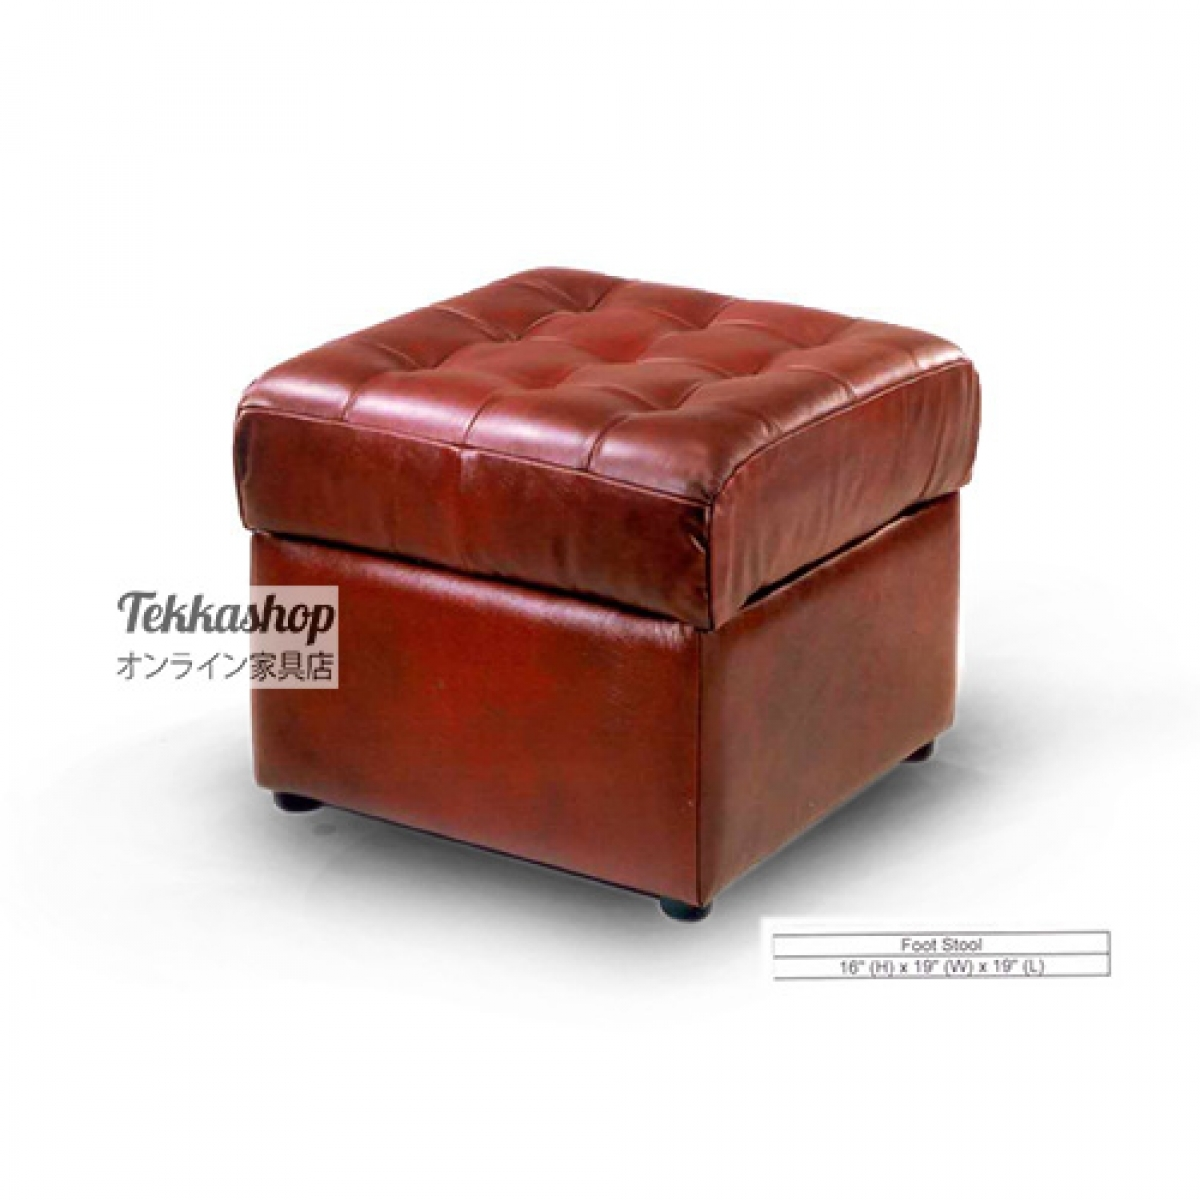 Tekkashop Leather Square Stool Ottoman Red 19x19x16inch